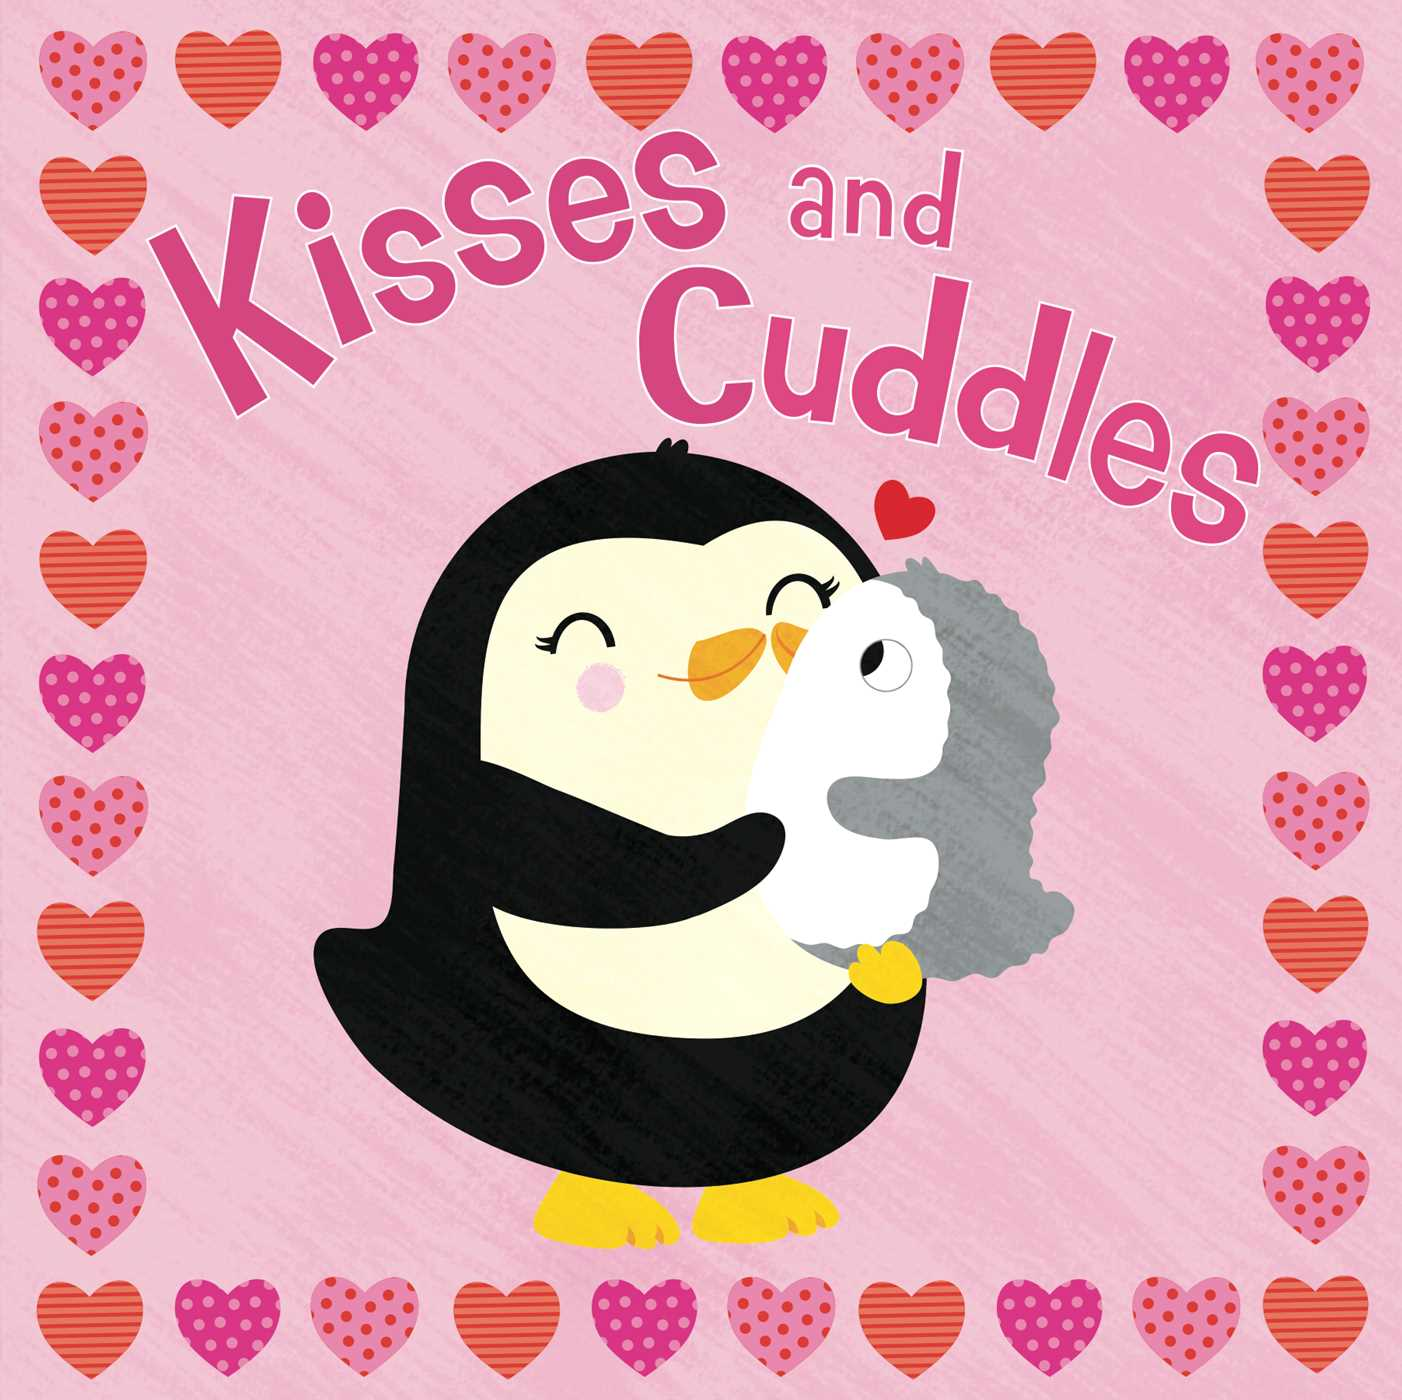 Kisses and Cuddles